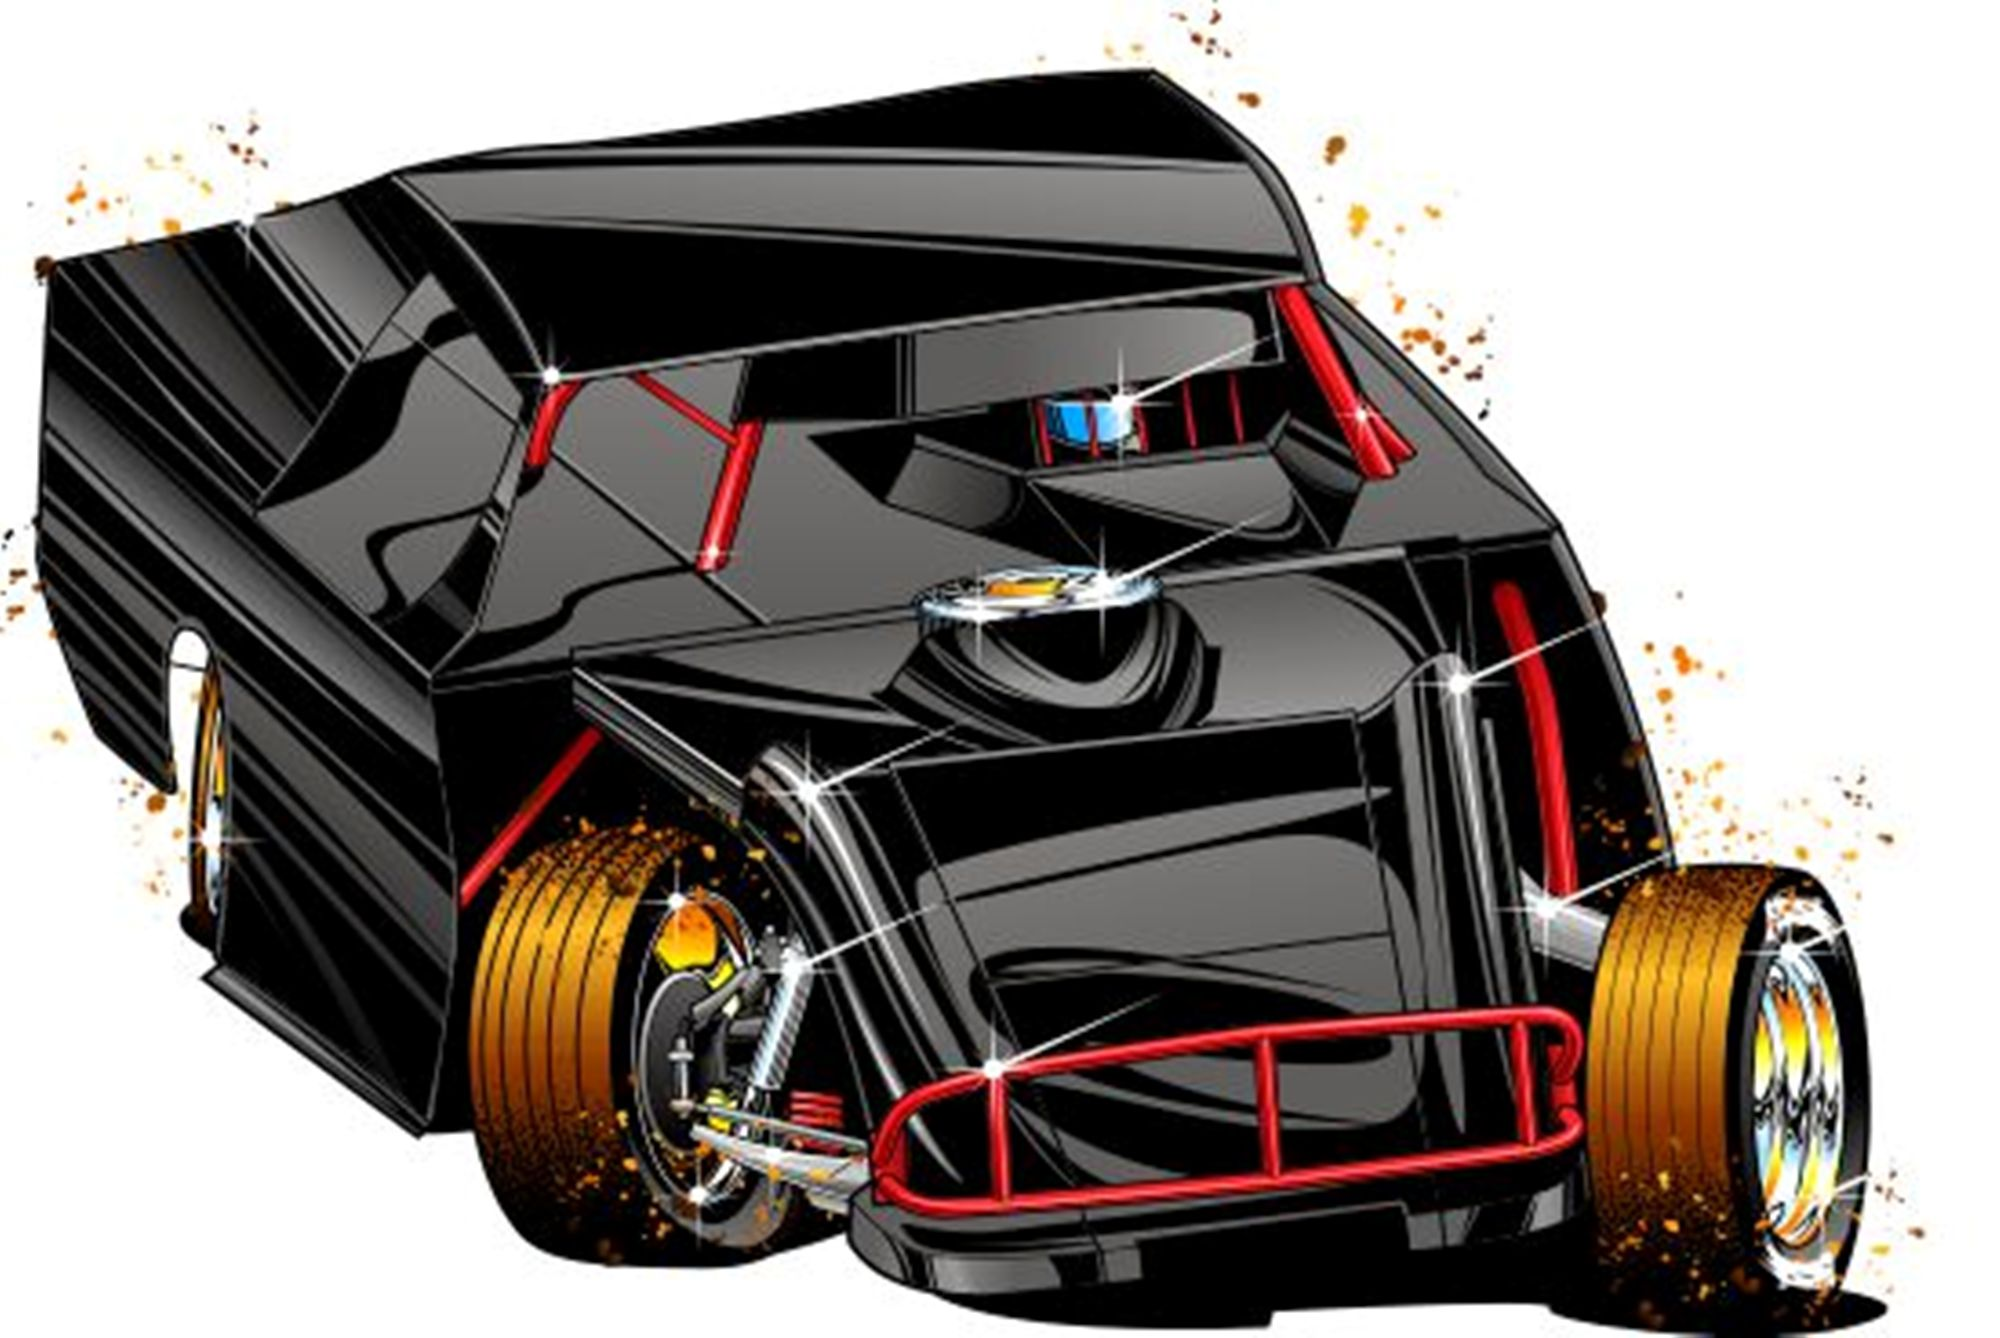 Black and Red Auto Illustration